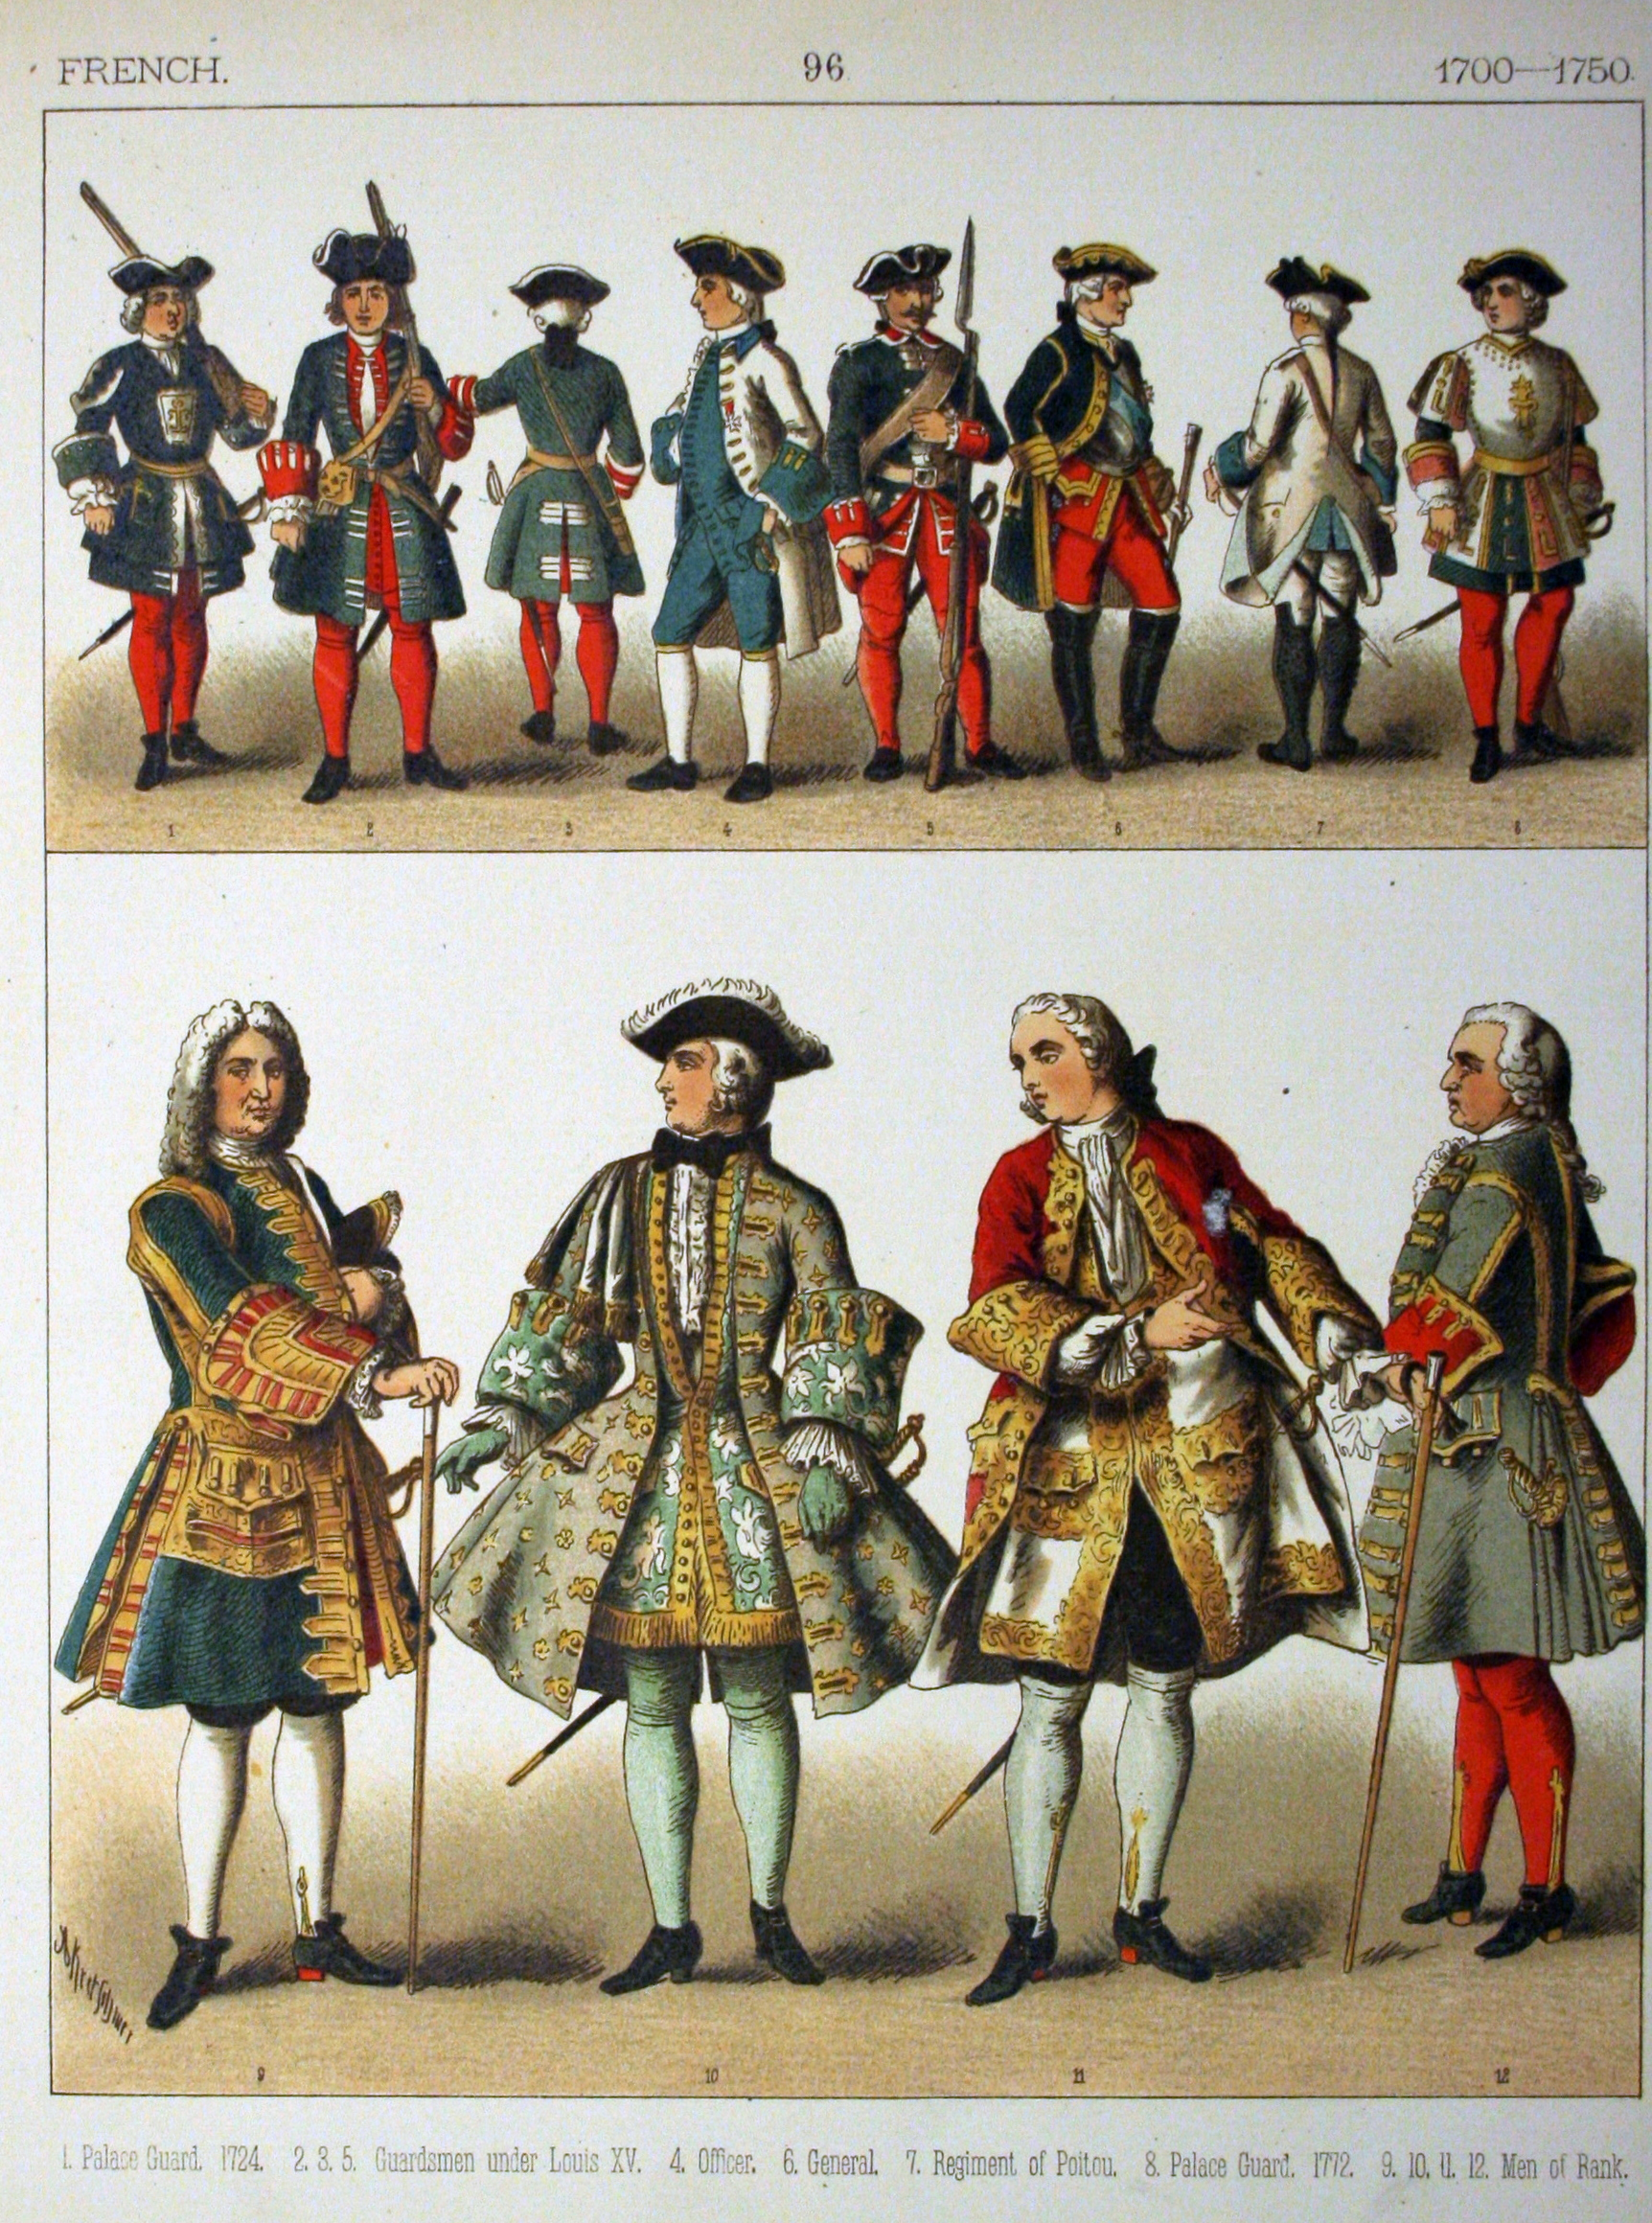 File:1700-1750, French - 096 - Costumes of All Nations (1882